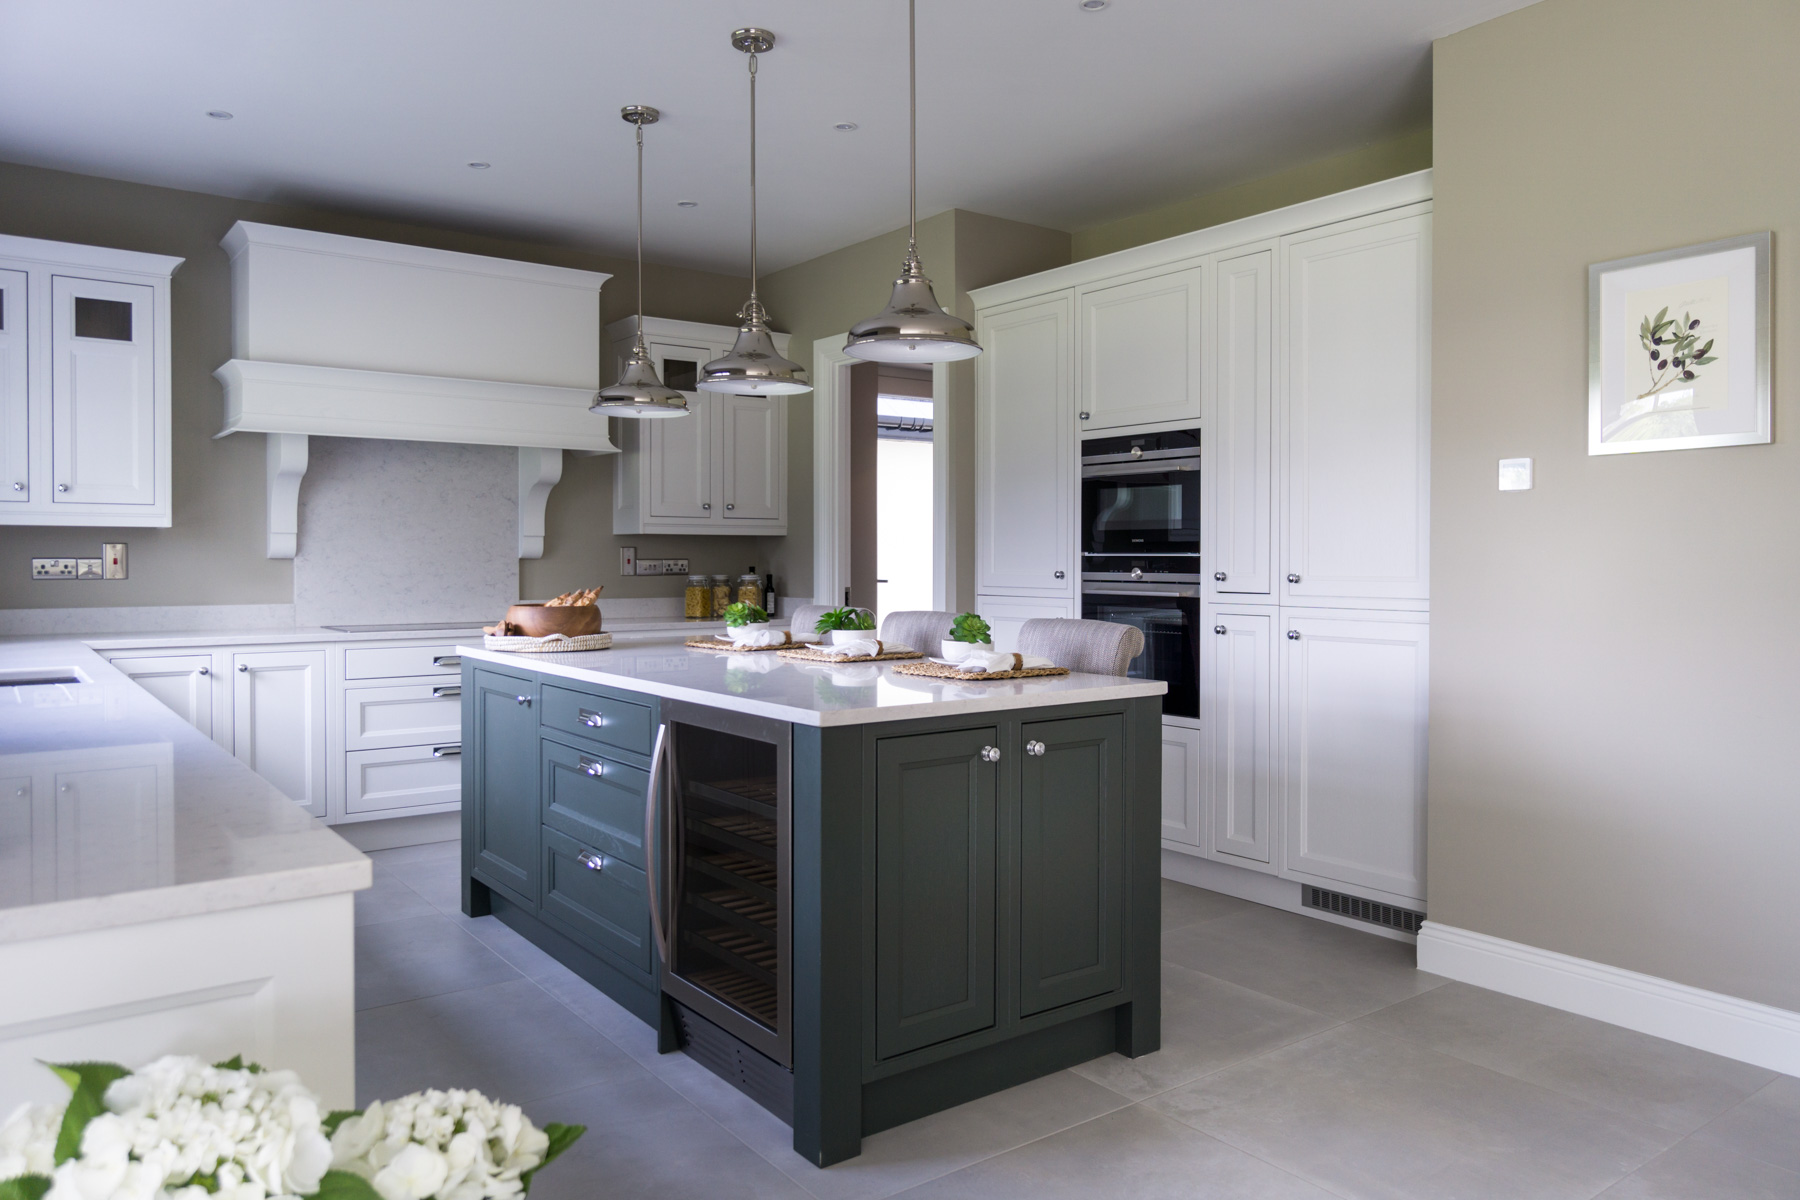 By Design Kitchens Clonee